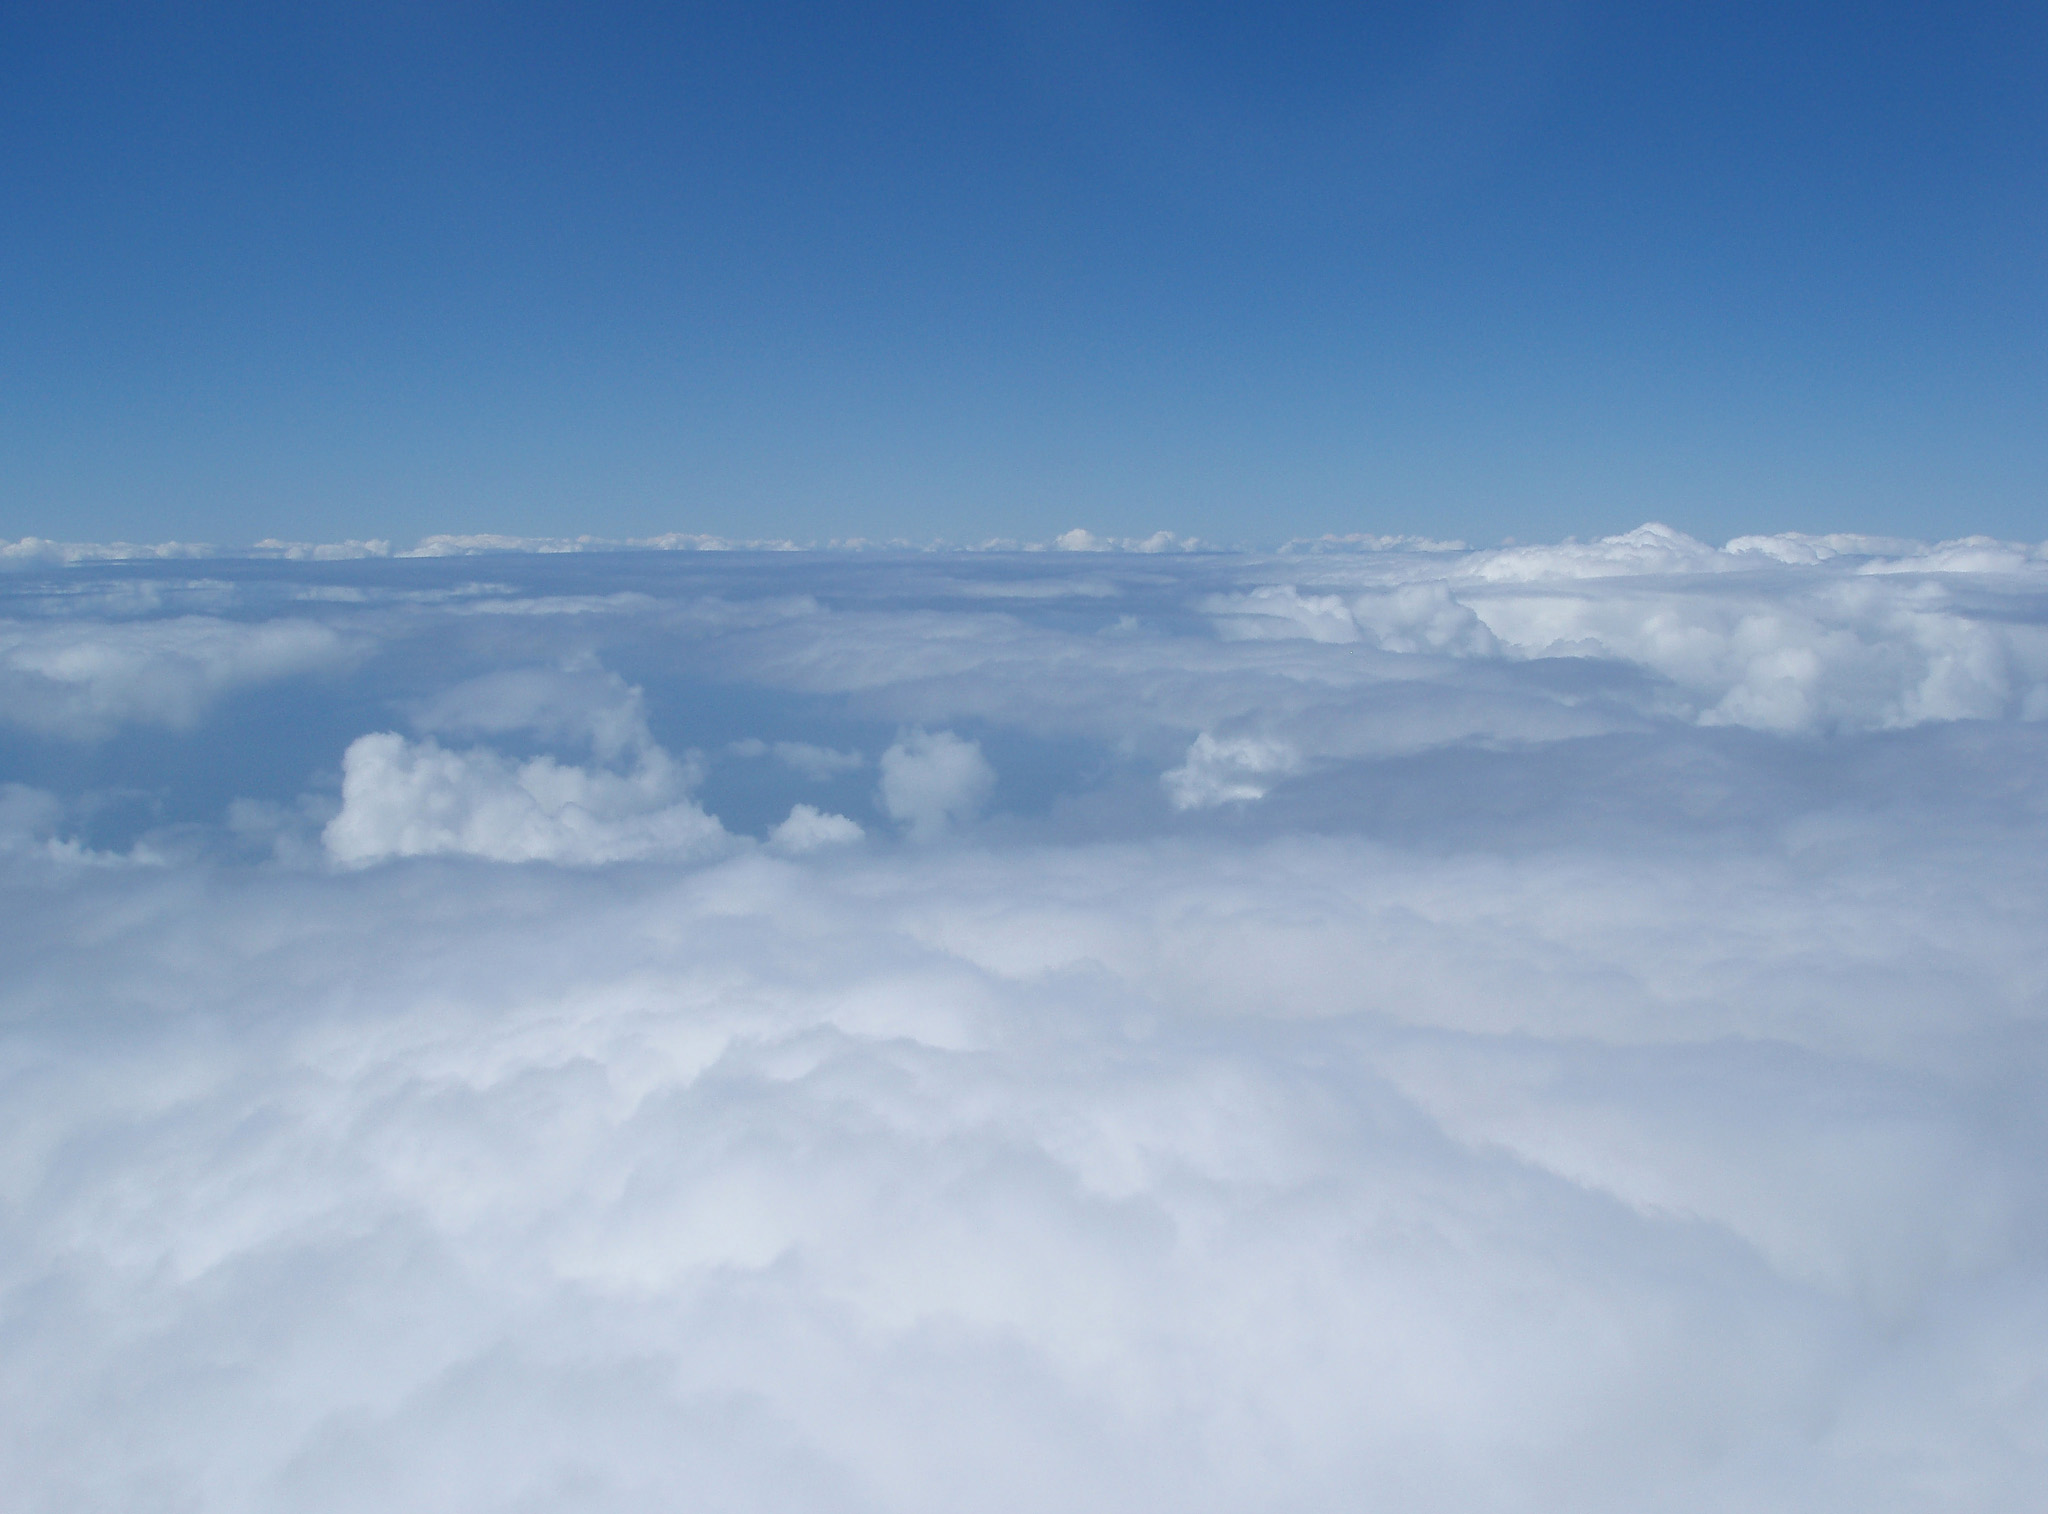 above the clouds 5021225 jpg 655